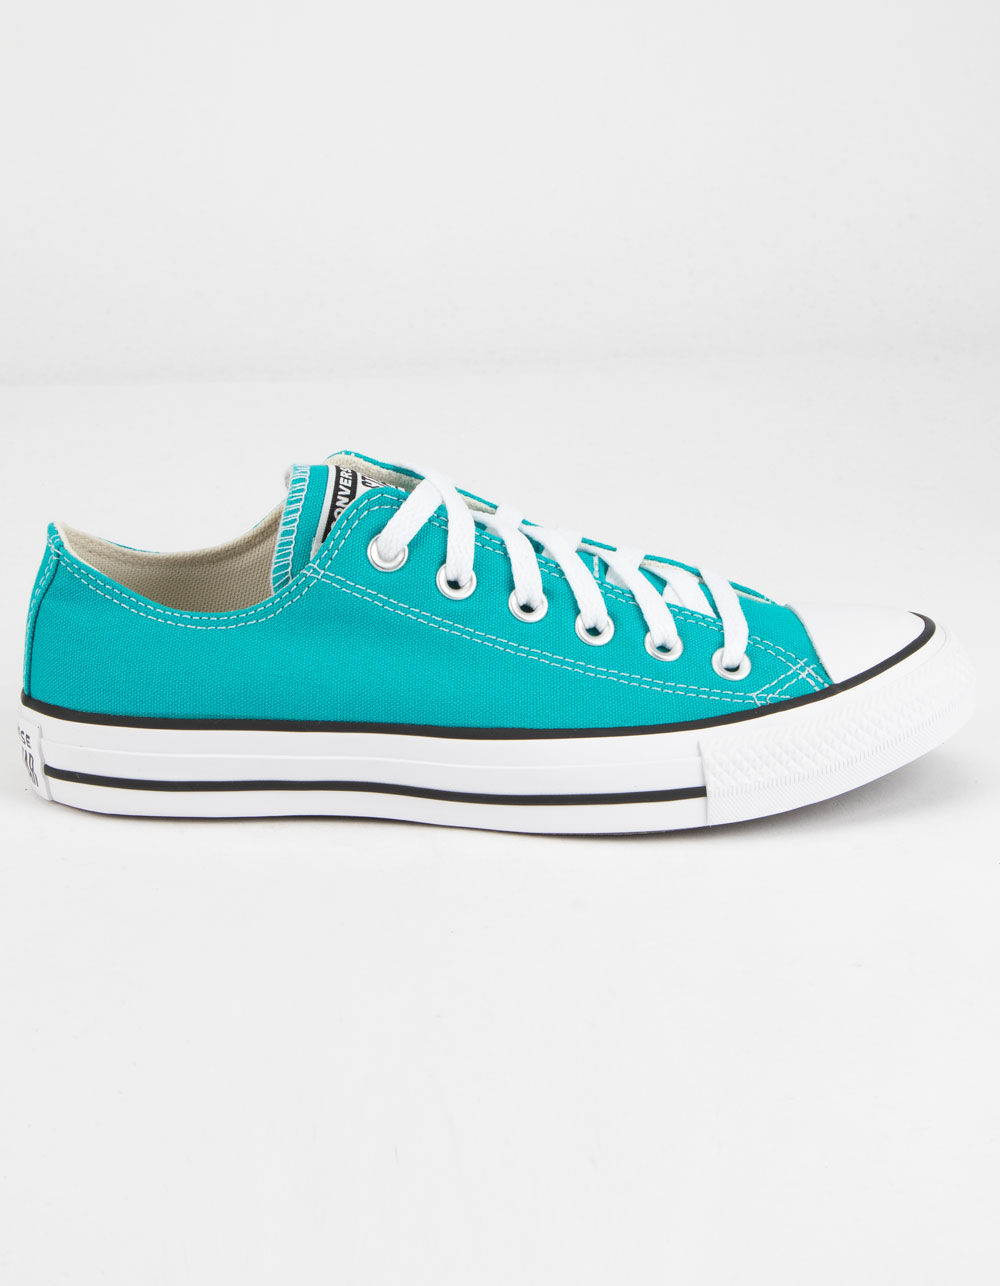 CONVERSE Chuck Taylor All Star Seasonal Color Green Low Top Shoes